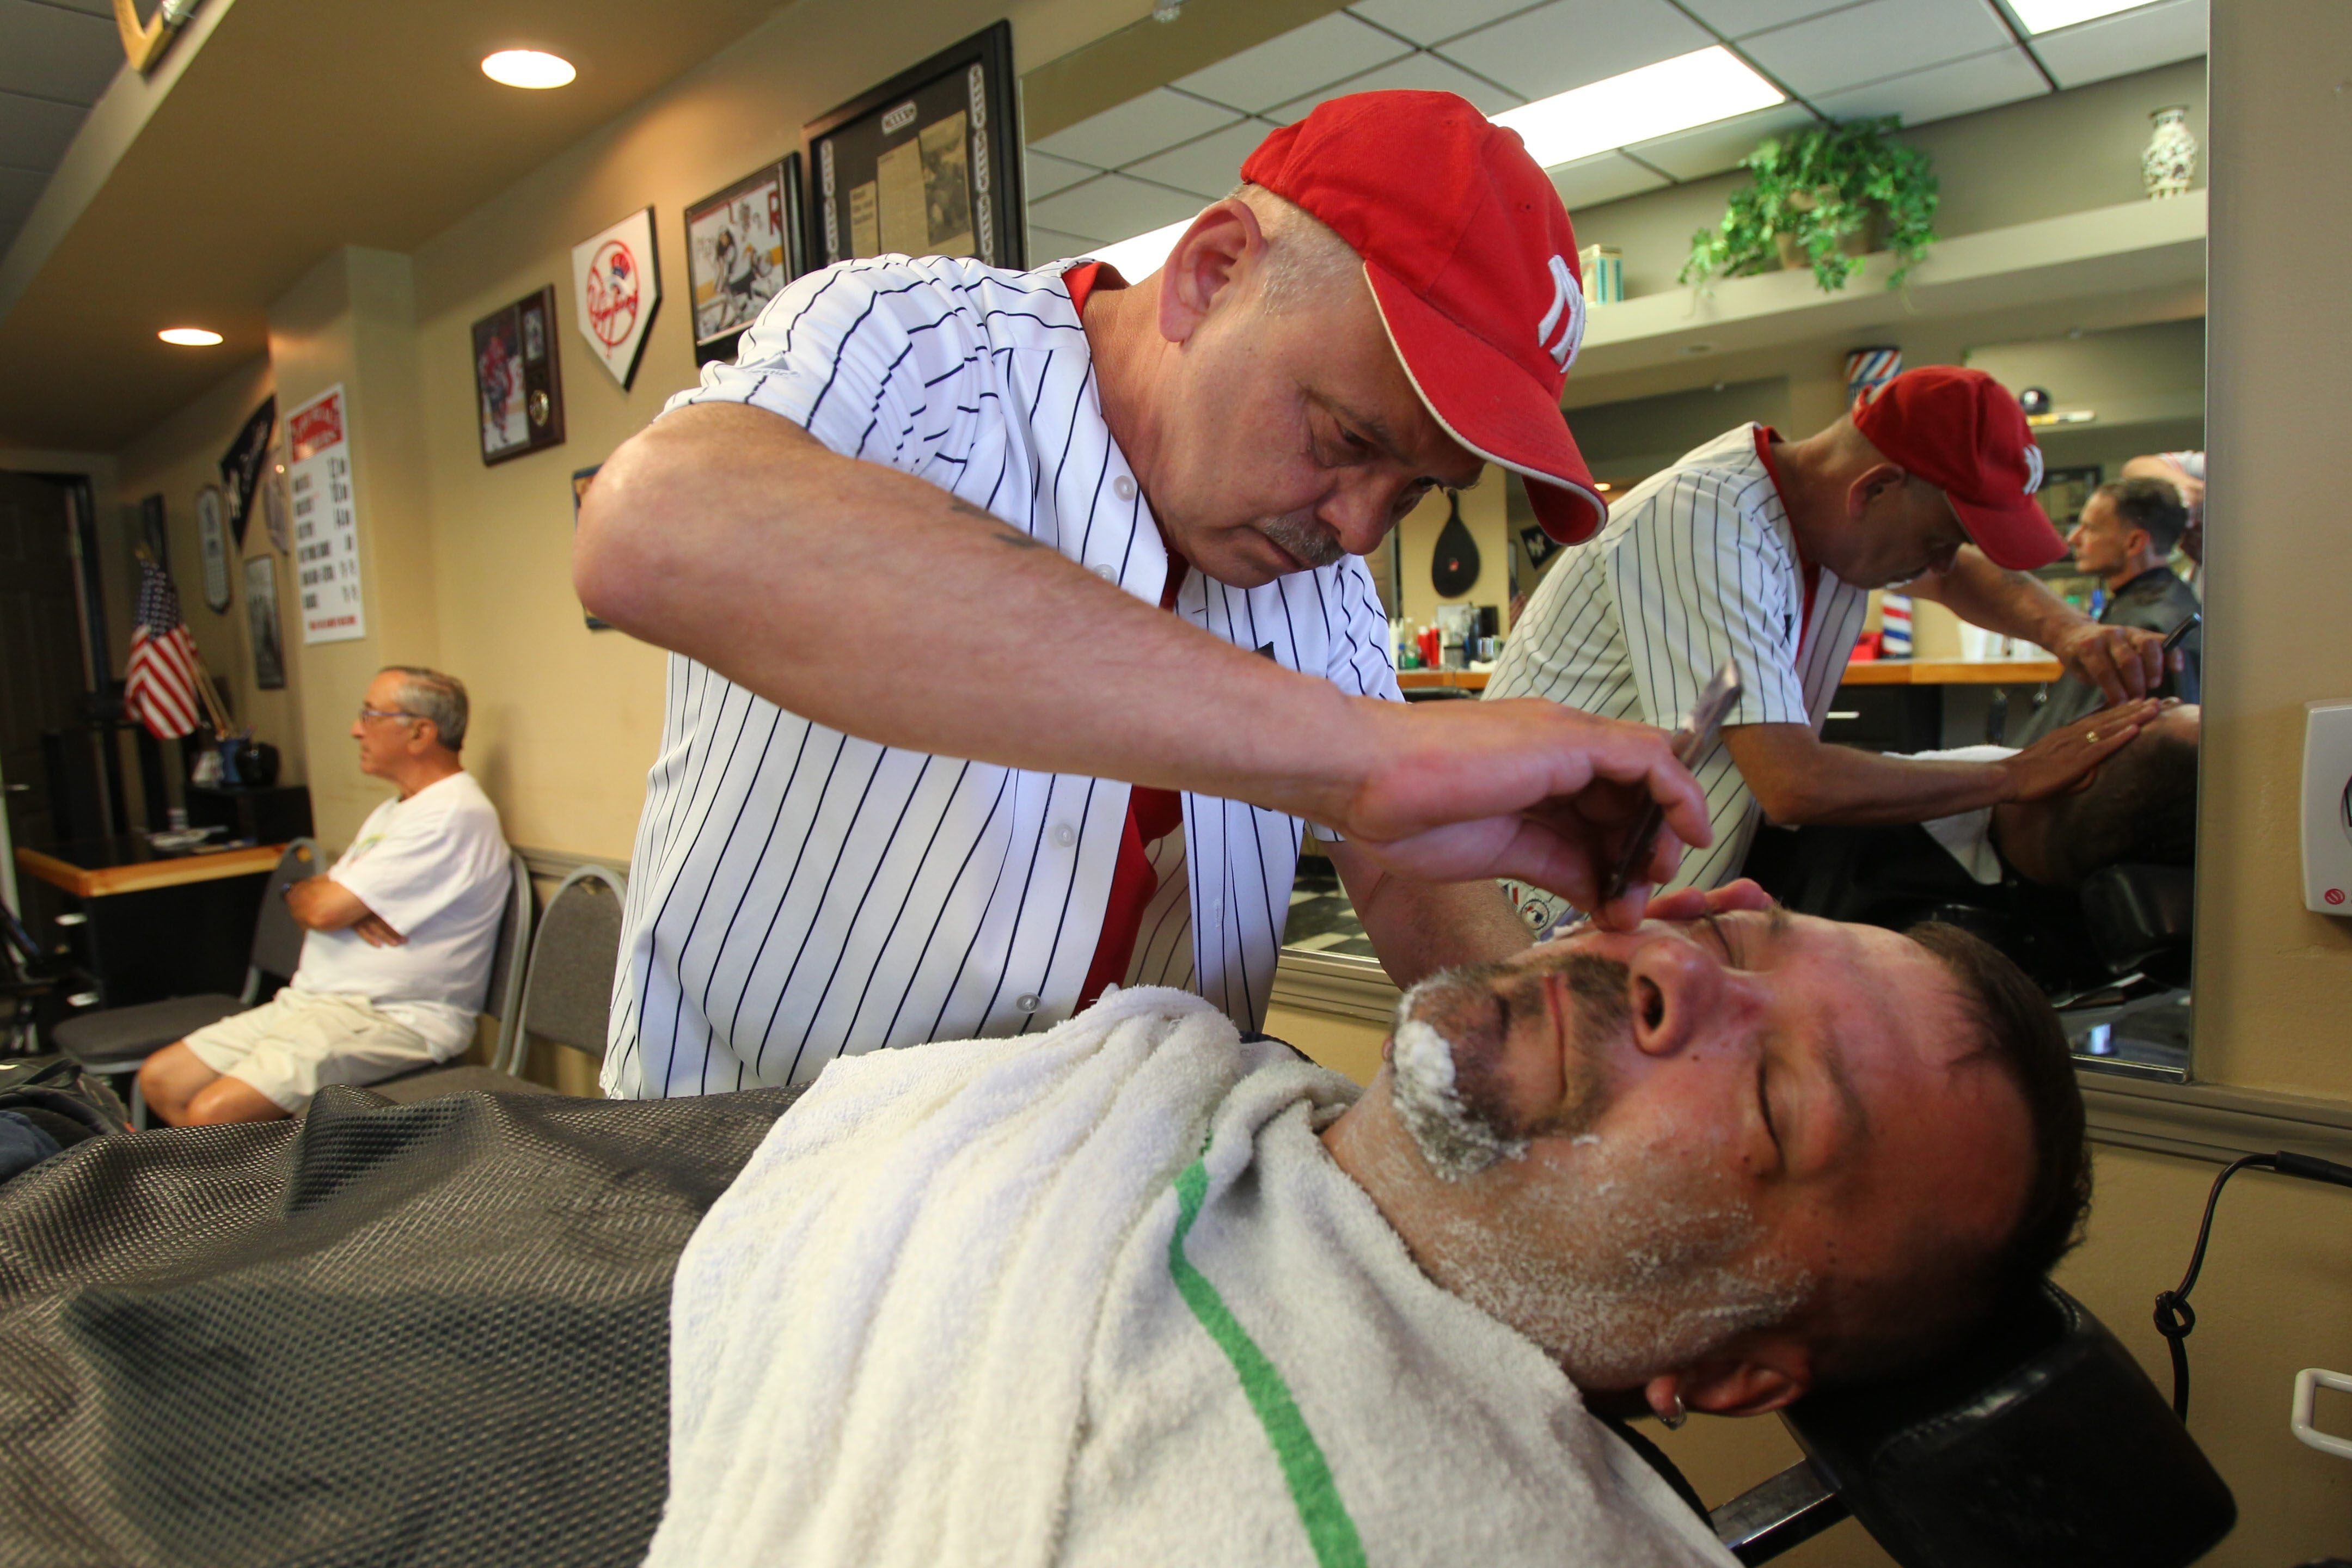 Vetaran barber Rich Rosso focuses closely as he gives a shave to customer Dave Zaleski at the Real Barbers in Kenmore.